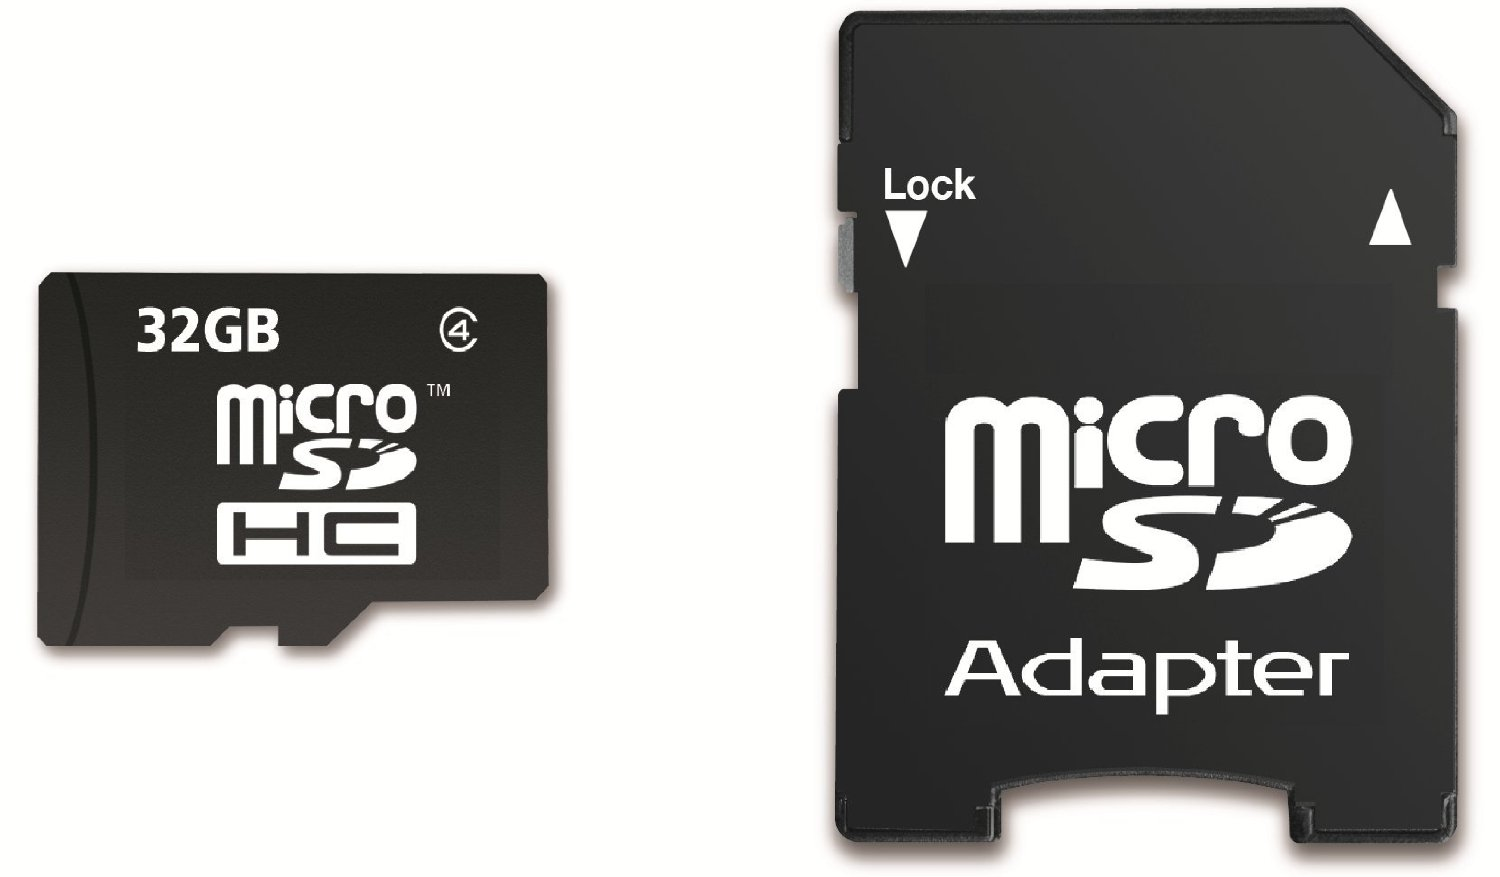 Qorr 32GB MicroSDMemory Card for Samsung Galaxy Tab, Tab 2,Tab 3